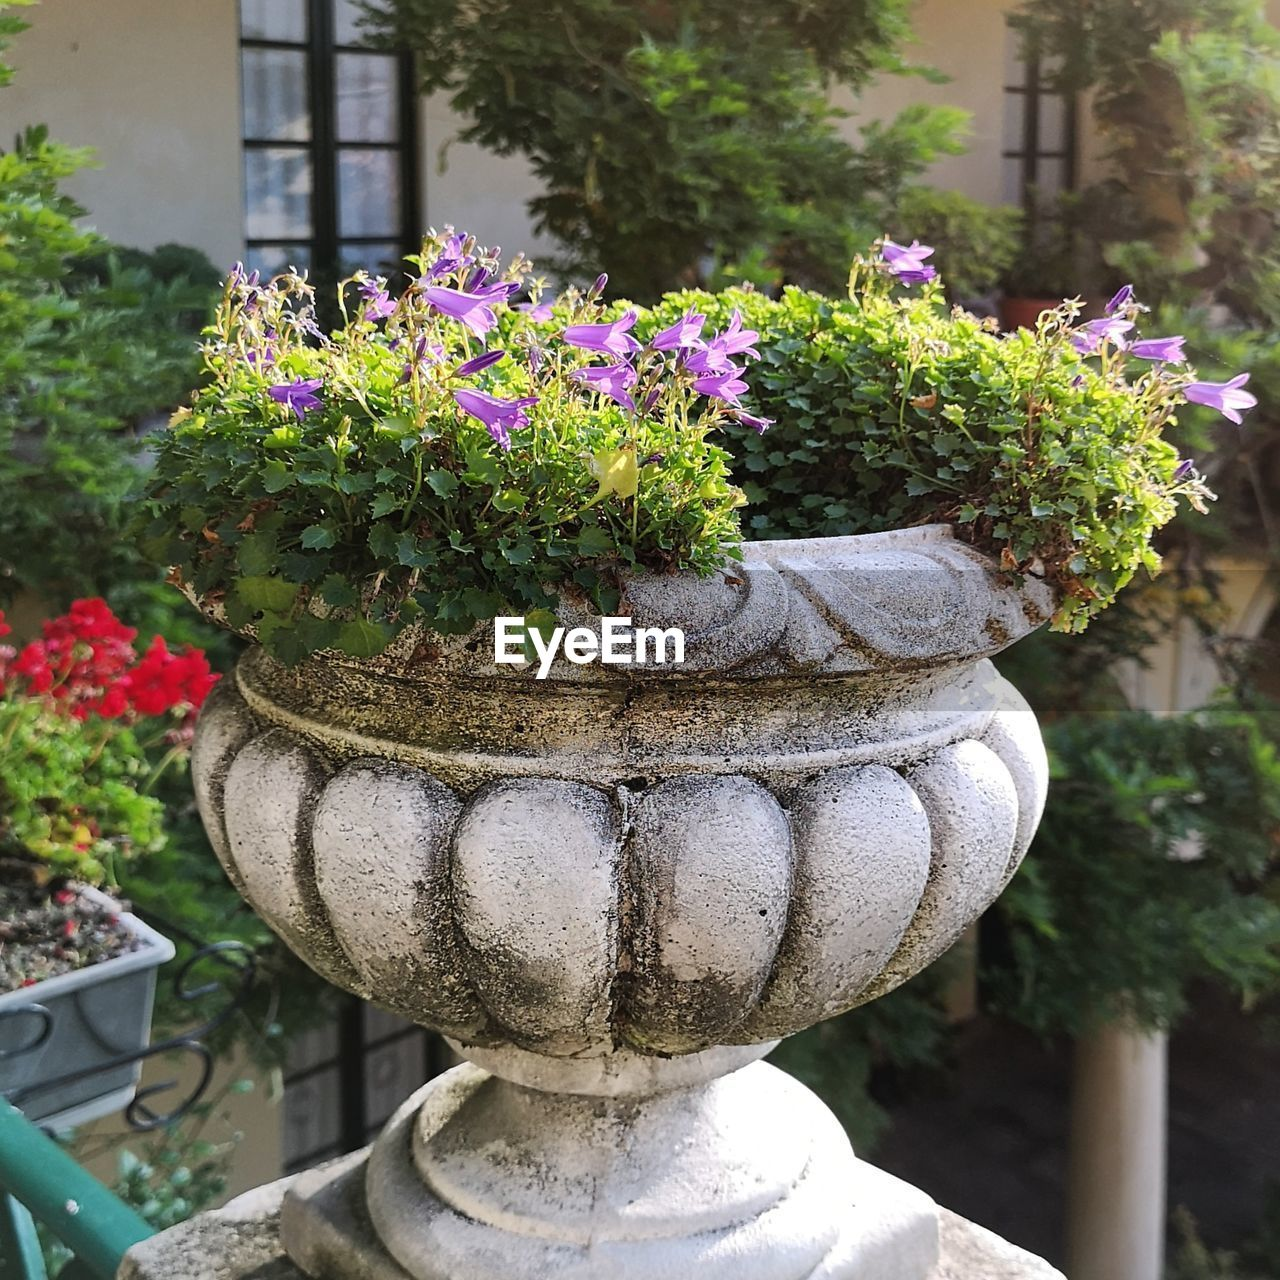 plant, flower, flowering plant, growth, nature, day, potted plant, no people, close-up, garden, architecture, beauty in nature, focus on foreground, outdoors, art and craft, park, flower pot, park - man made space, formal garden, front or back yard, gardening